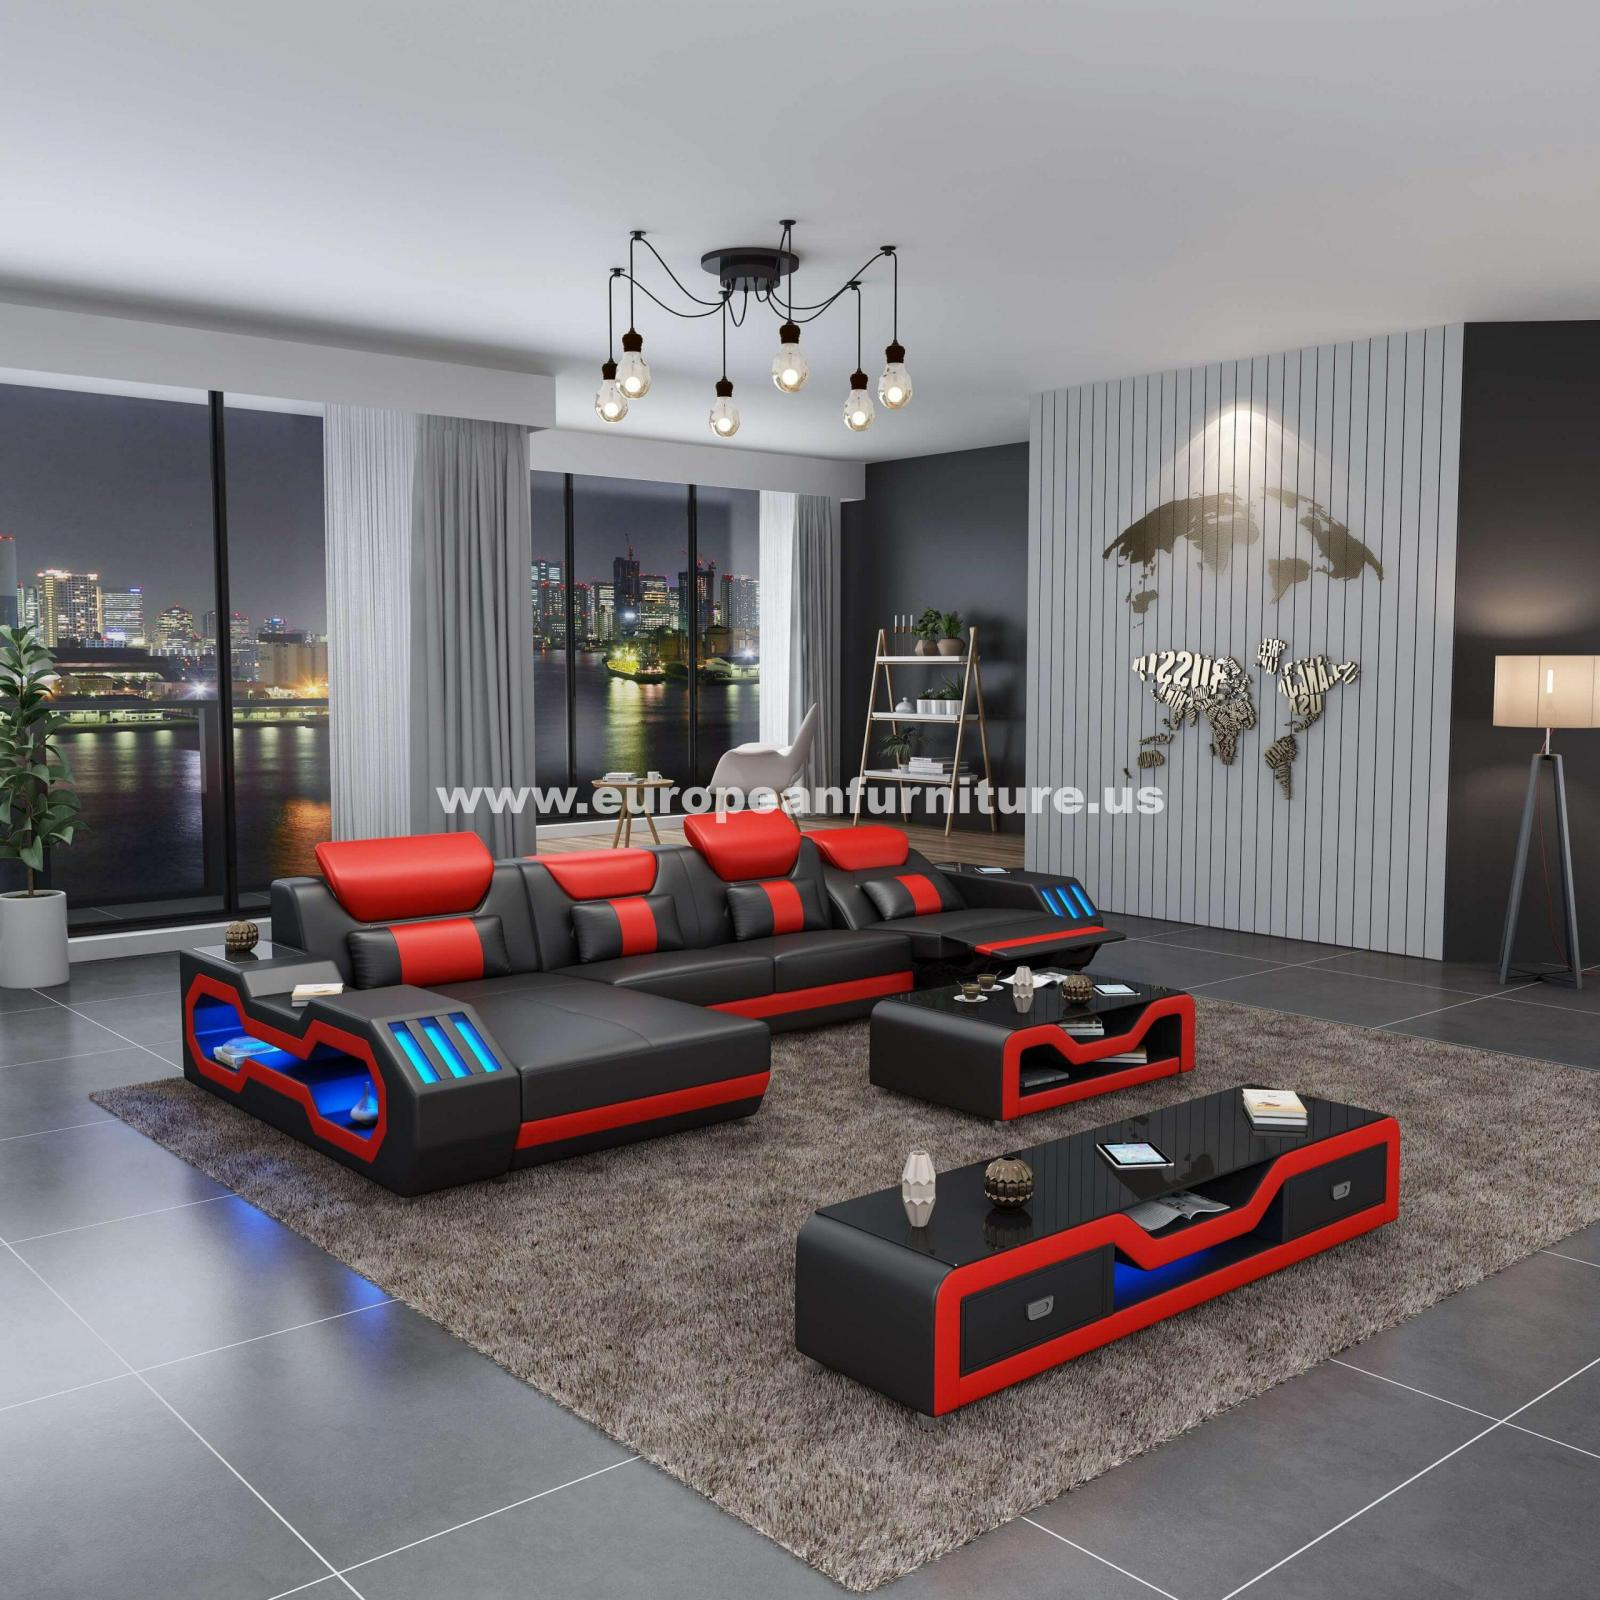 Contemporary, Modern Black, Red Italian Leather and Wood, Genuine leather, Solid Hardwood Reclining Sectional LHC STARFIGHTER by European Furniture